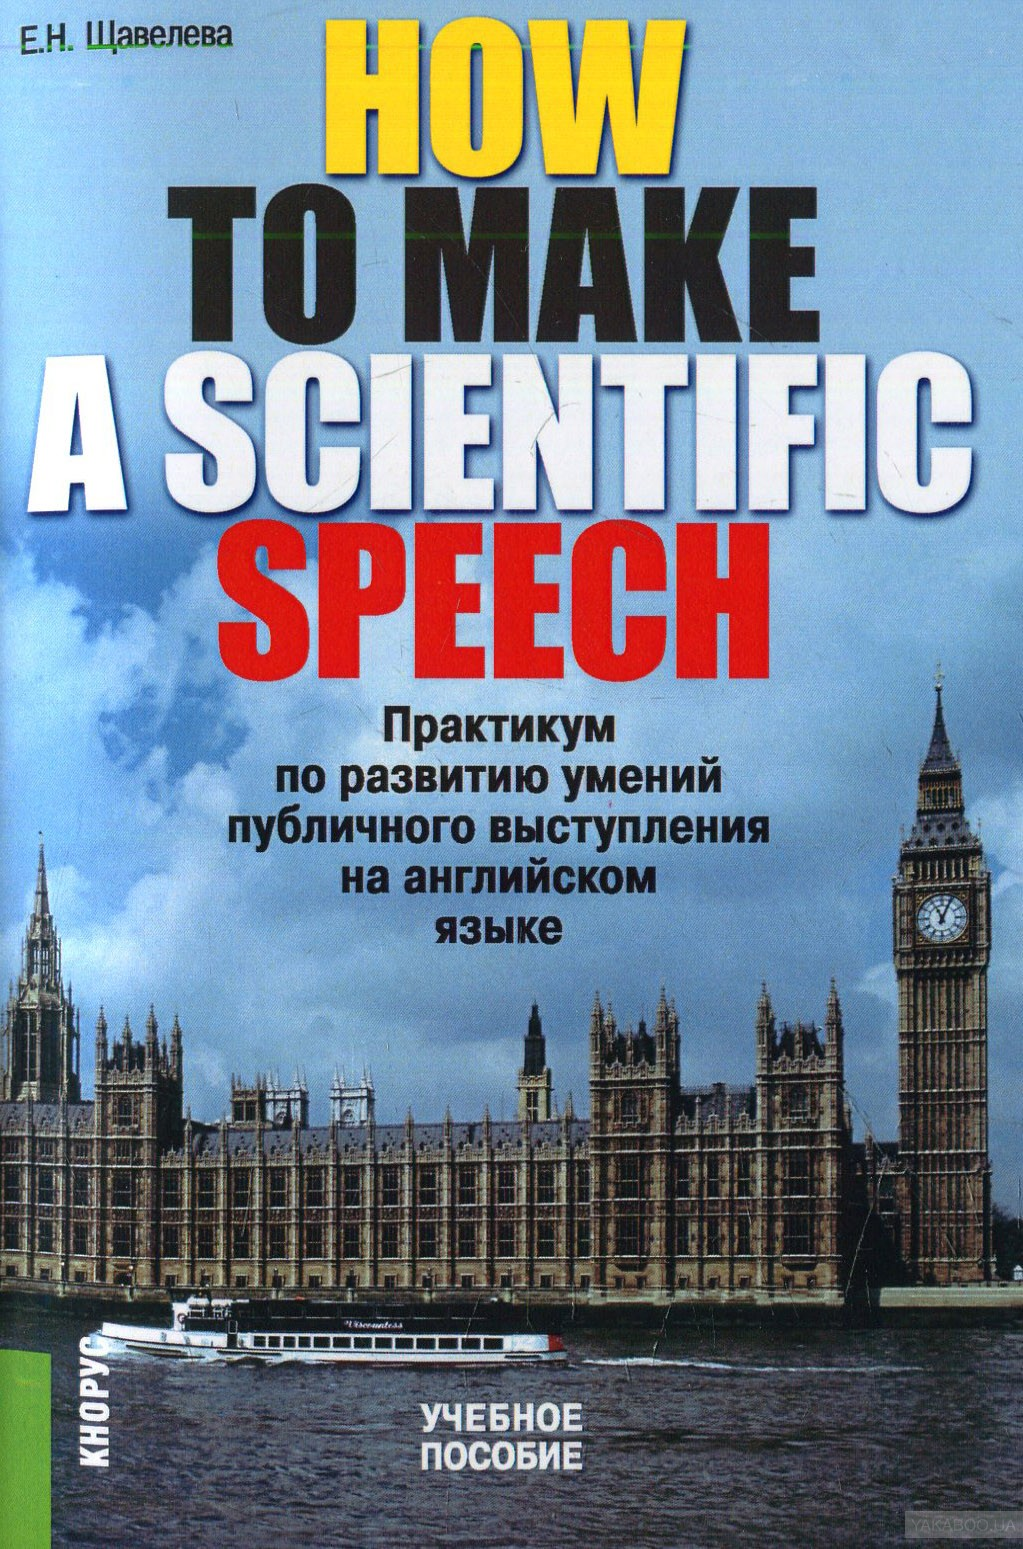 How to make a scientific speech. практикум по развитию умений публичного выступления на английском языке